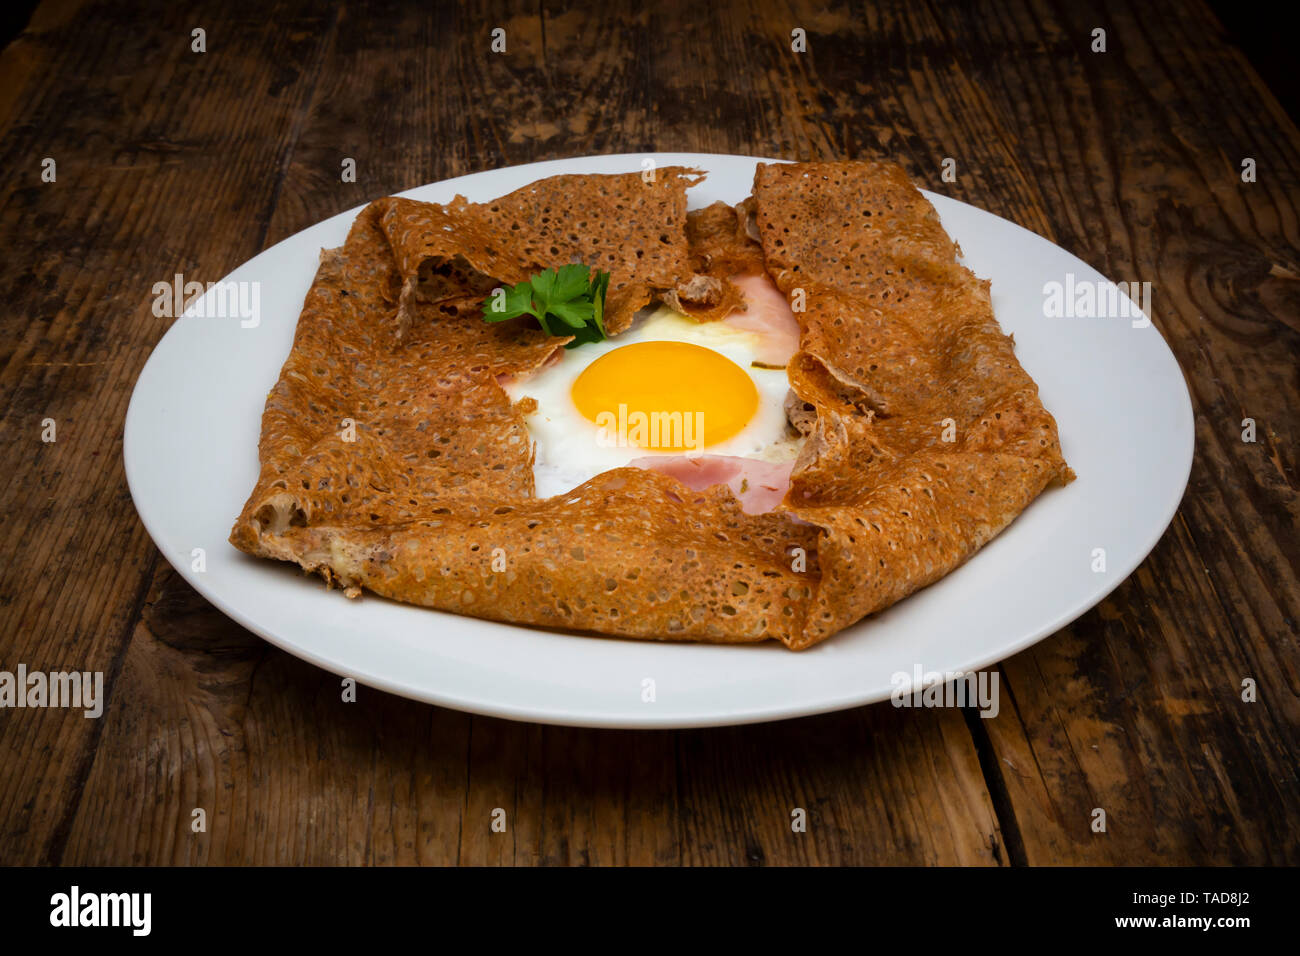 Galette Complete Breton Buckwheat Pancake With Egg Cheese Und Ham Glutenfree Stock Photo Alamy